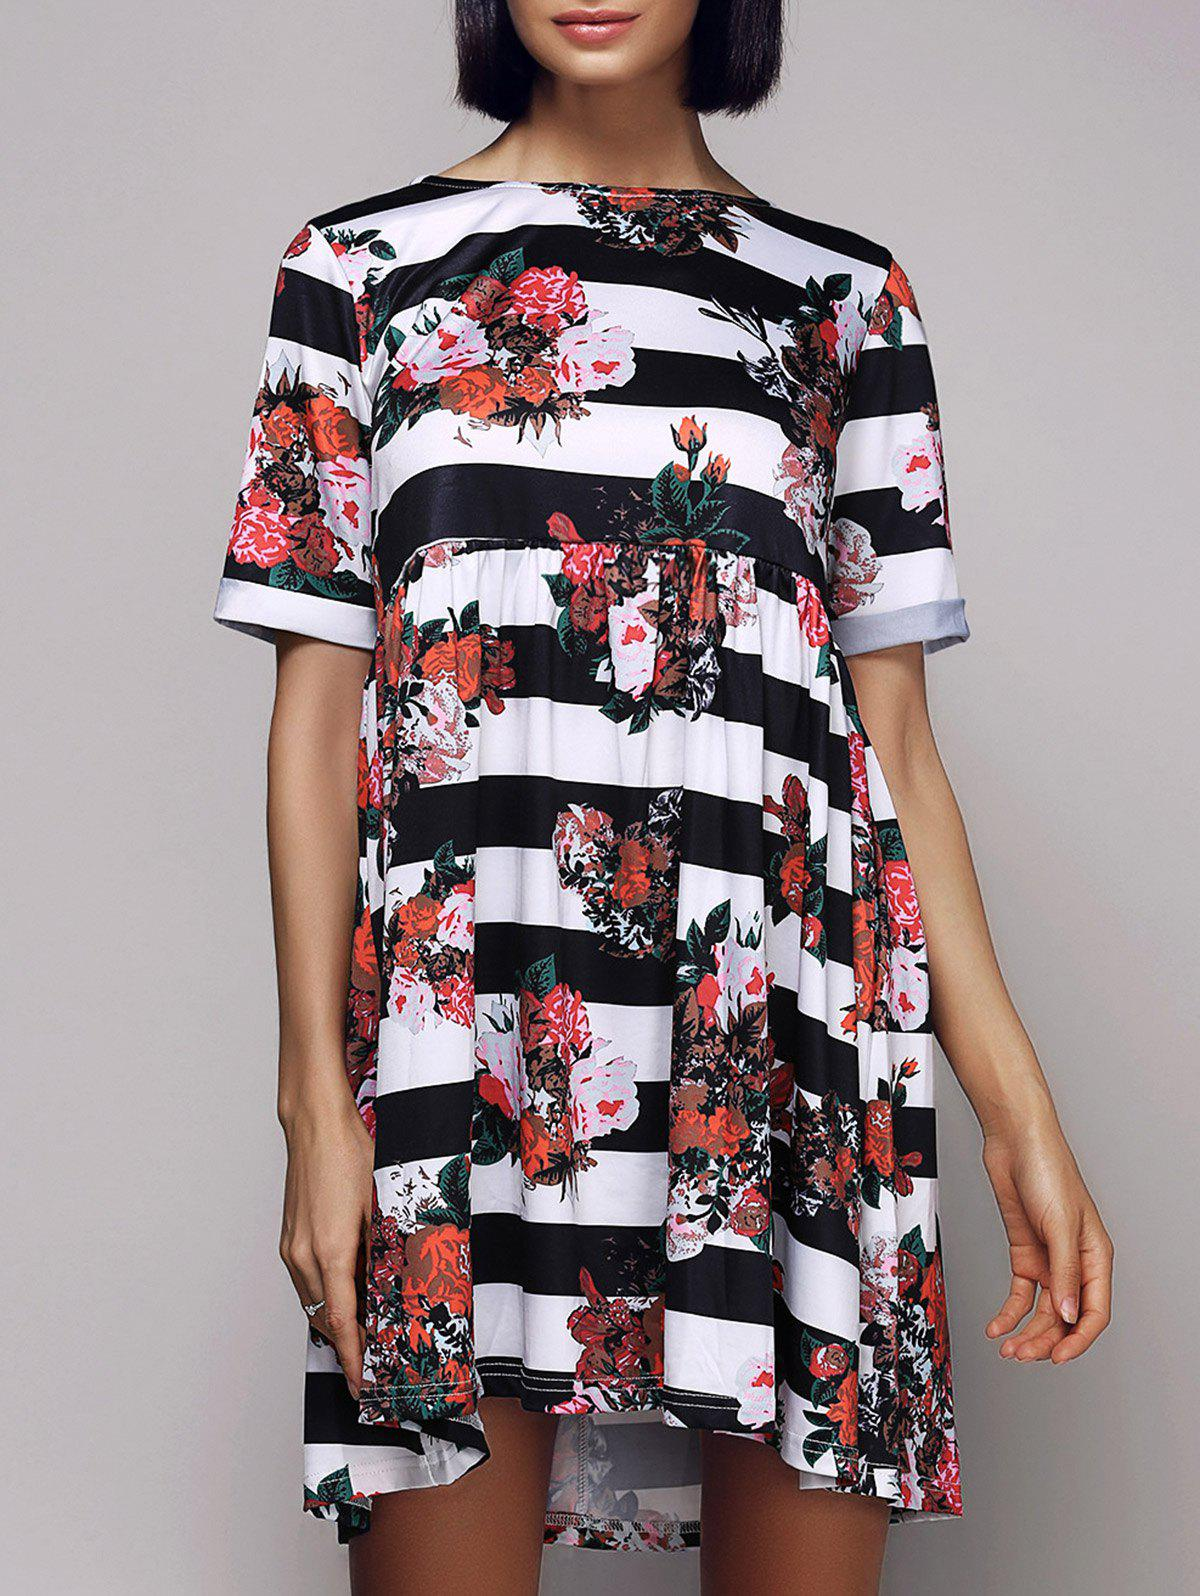 Casual Women's Short Sleeve Round Neck Striped Floral Dress - BLACK L